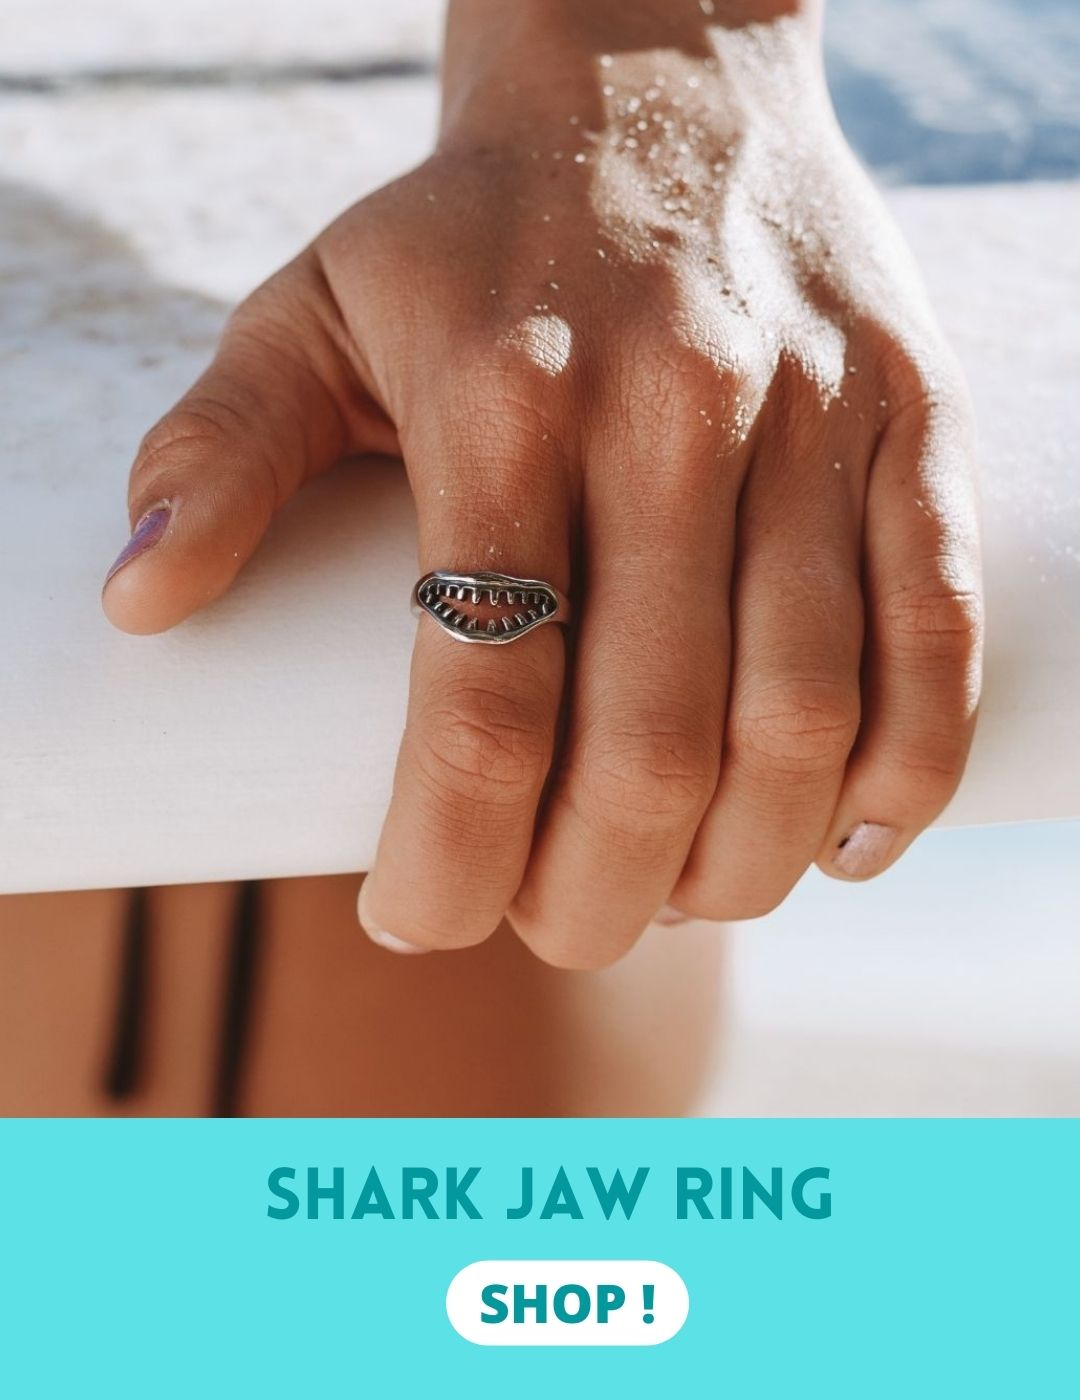 Shark ring meaning